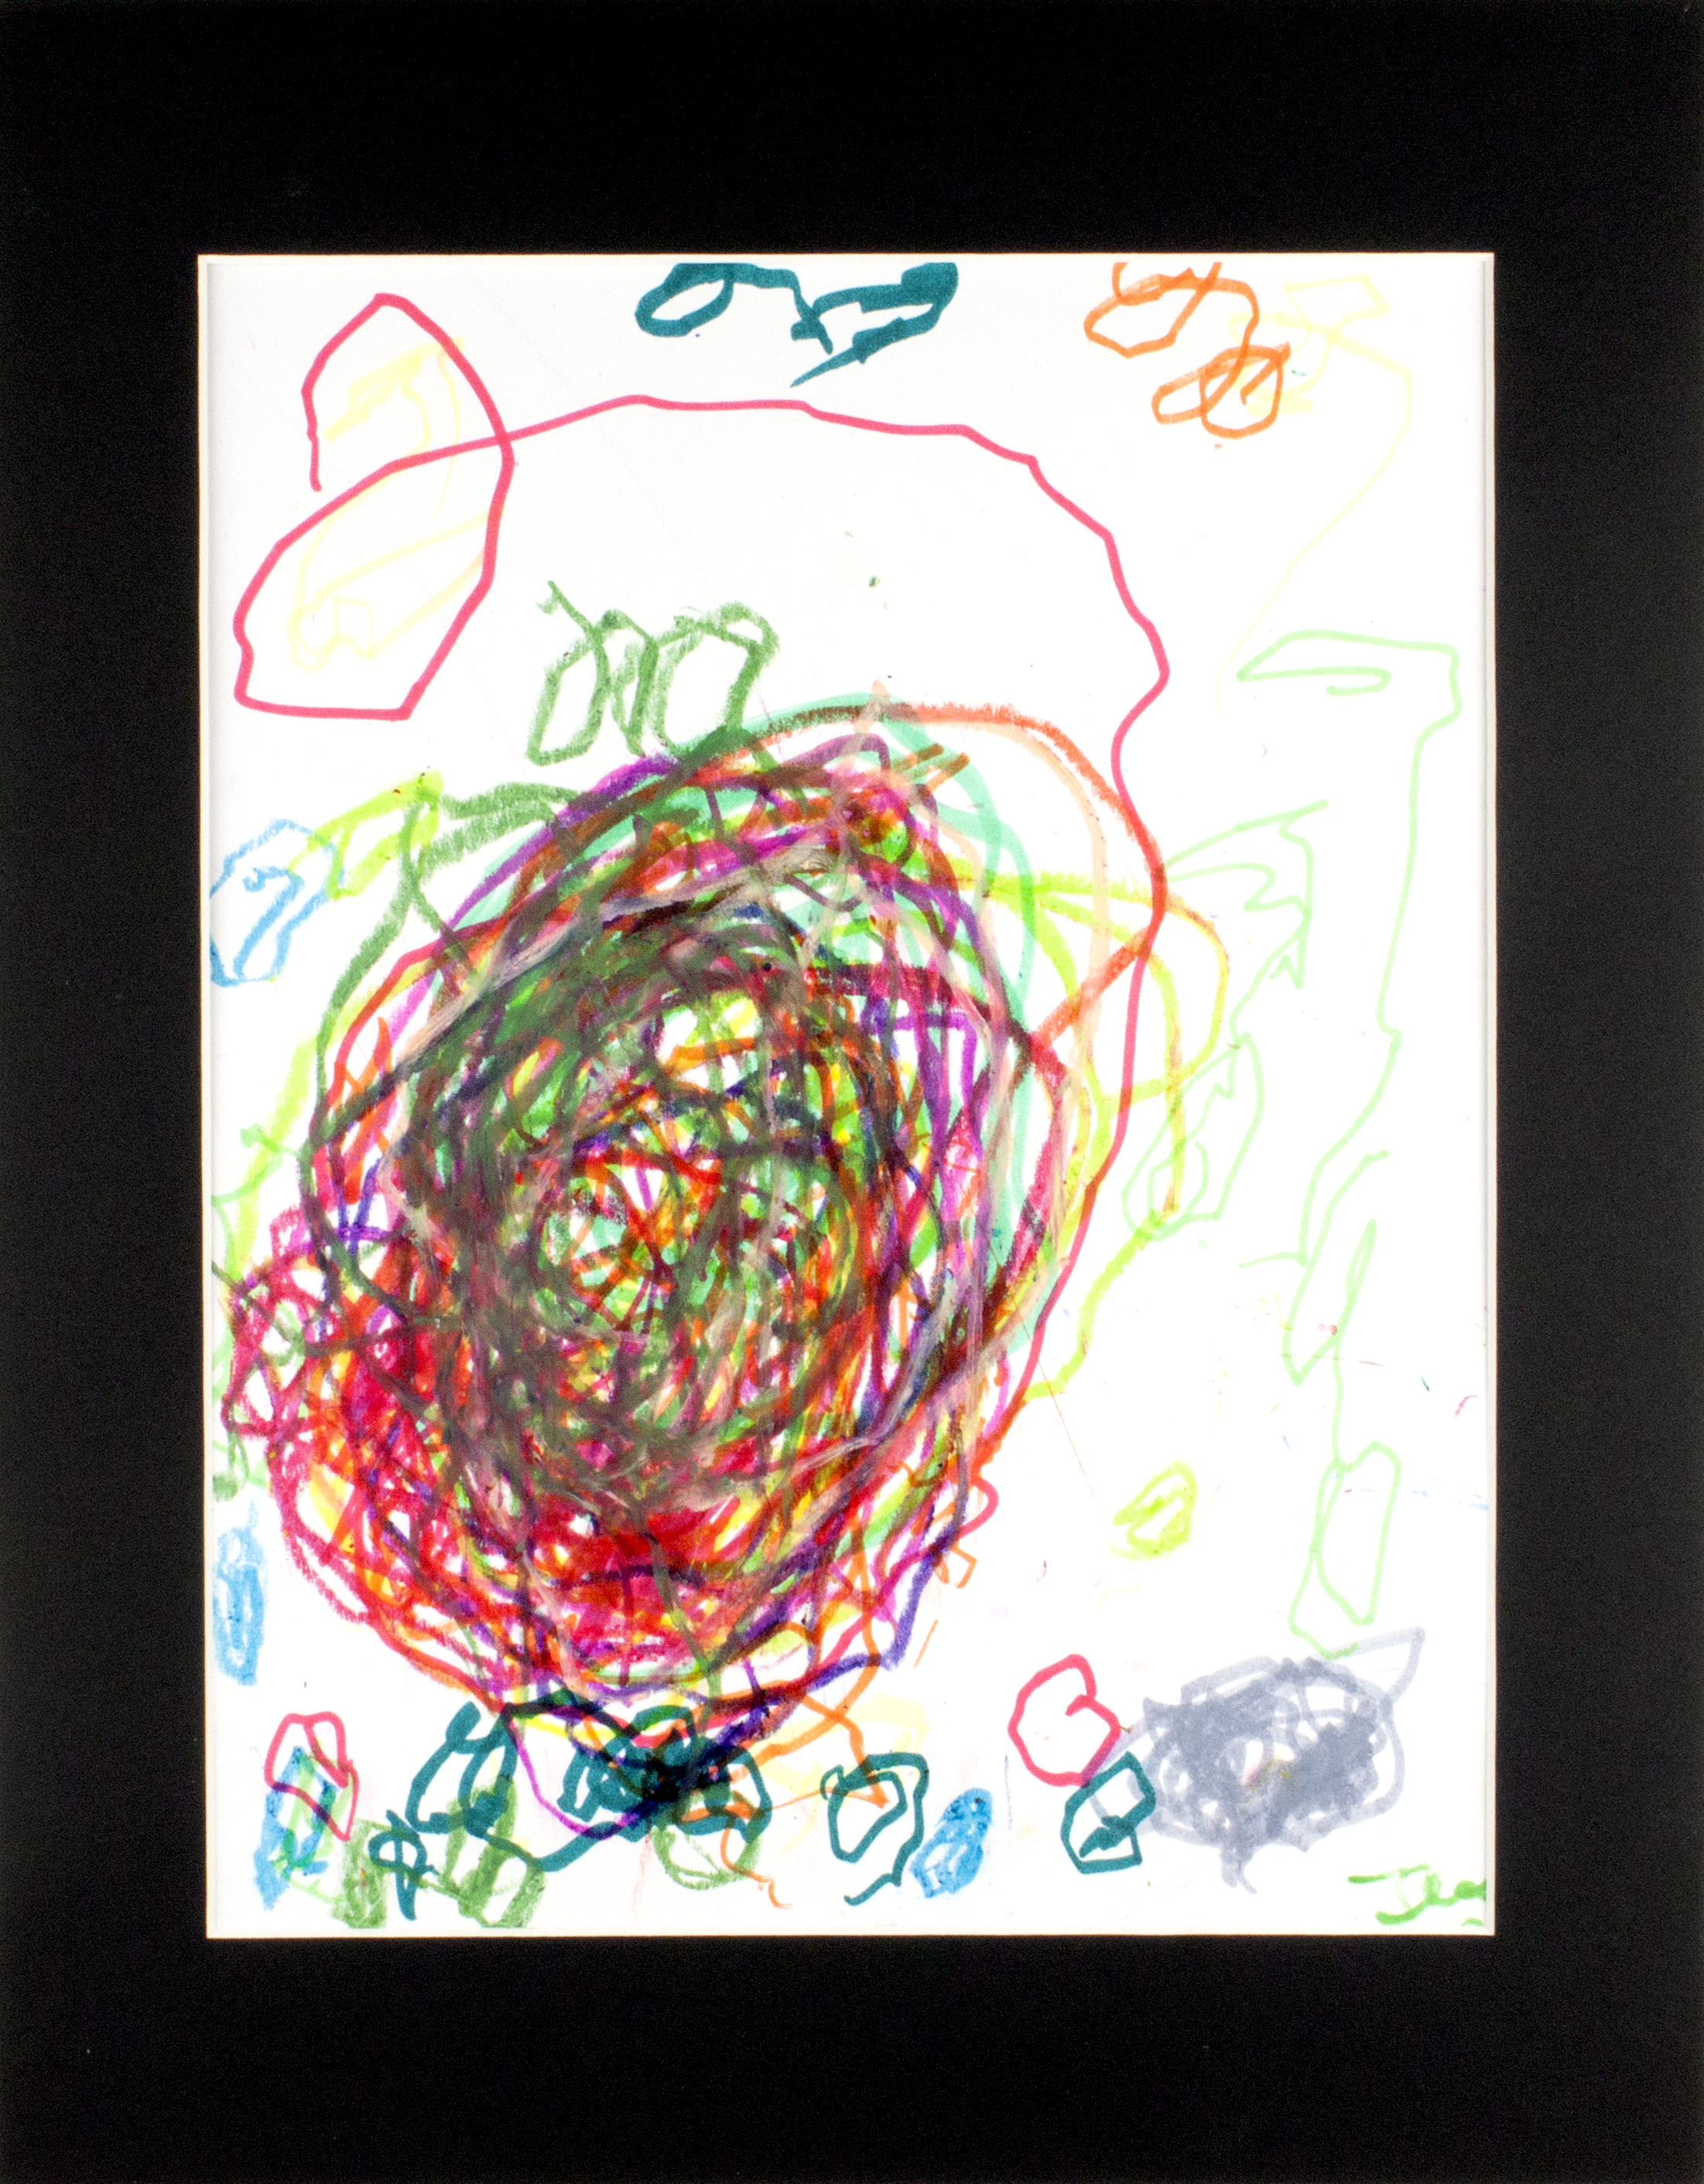 "Untitled . Washable marker and oil pastel on bristol paper. 11"" x 14"" matted."